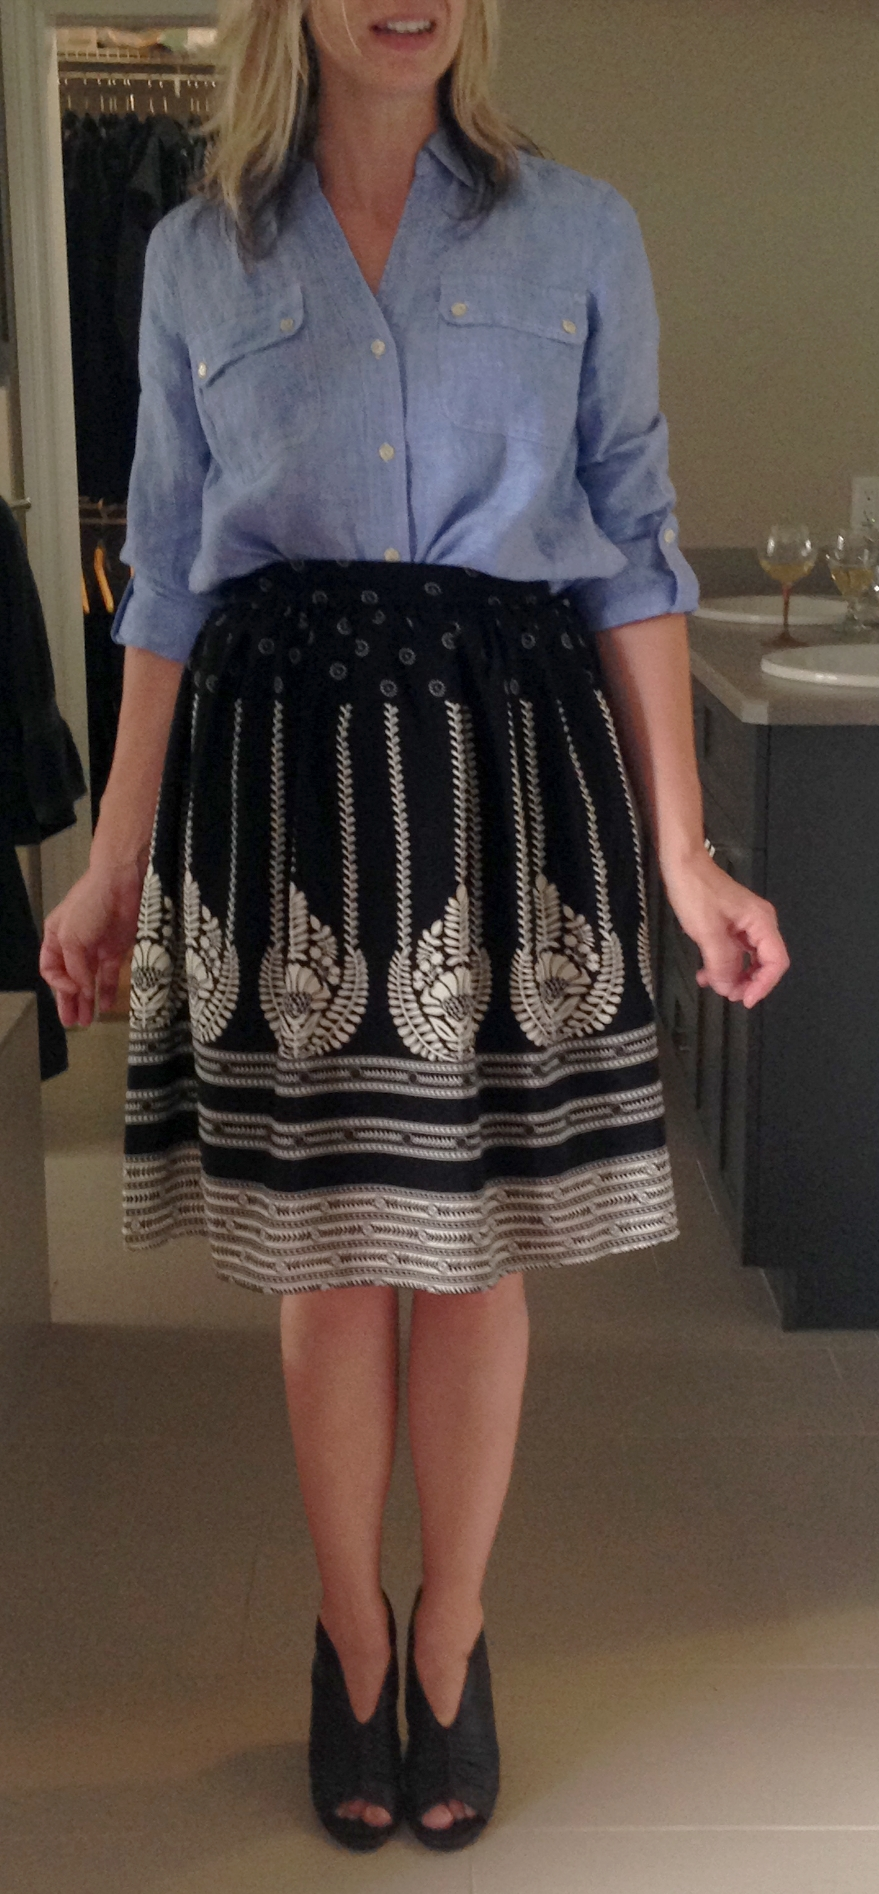 For starts, tuck it into any one of your 400 hundred black-ish skirts to instantly look like a Pinterest model.